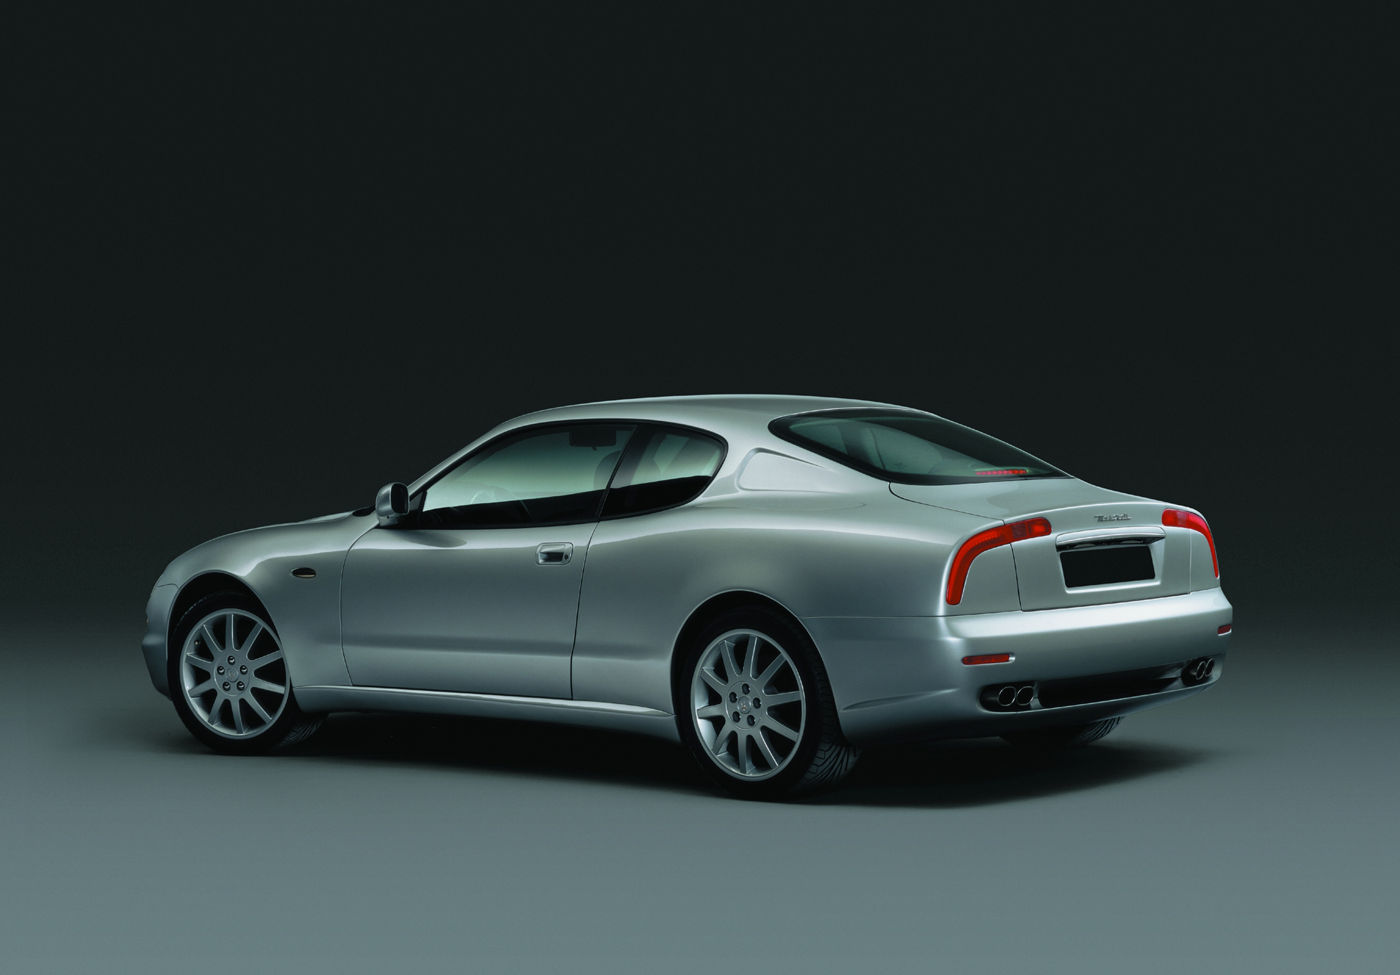 1998 Maserati 3200GT - rear view of the classic sports car model in gray